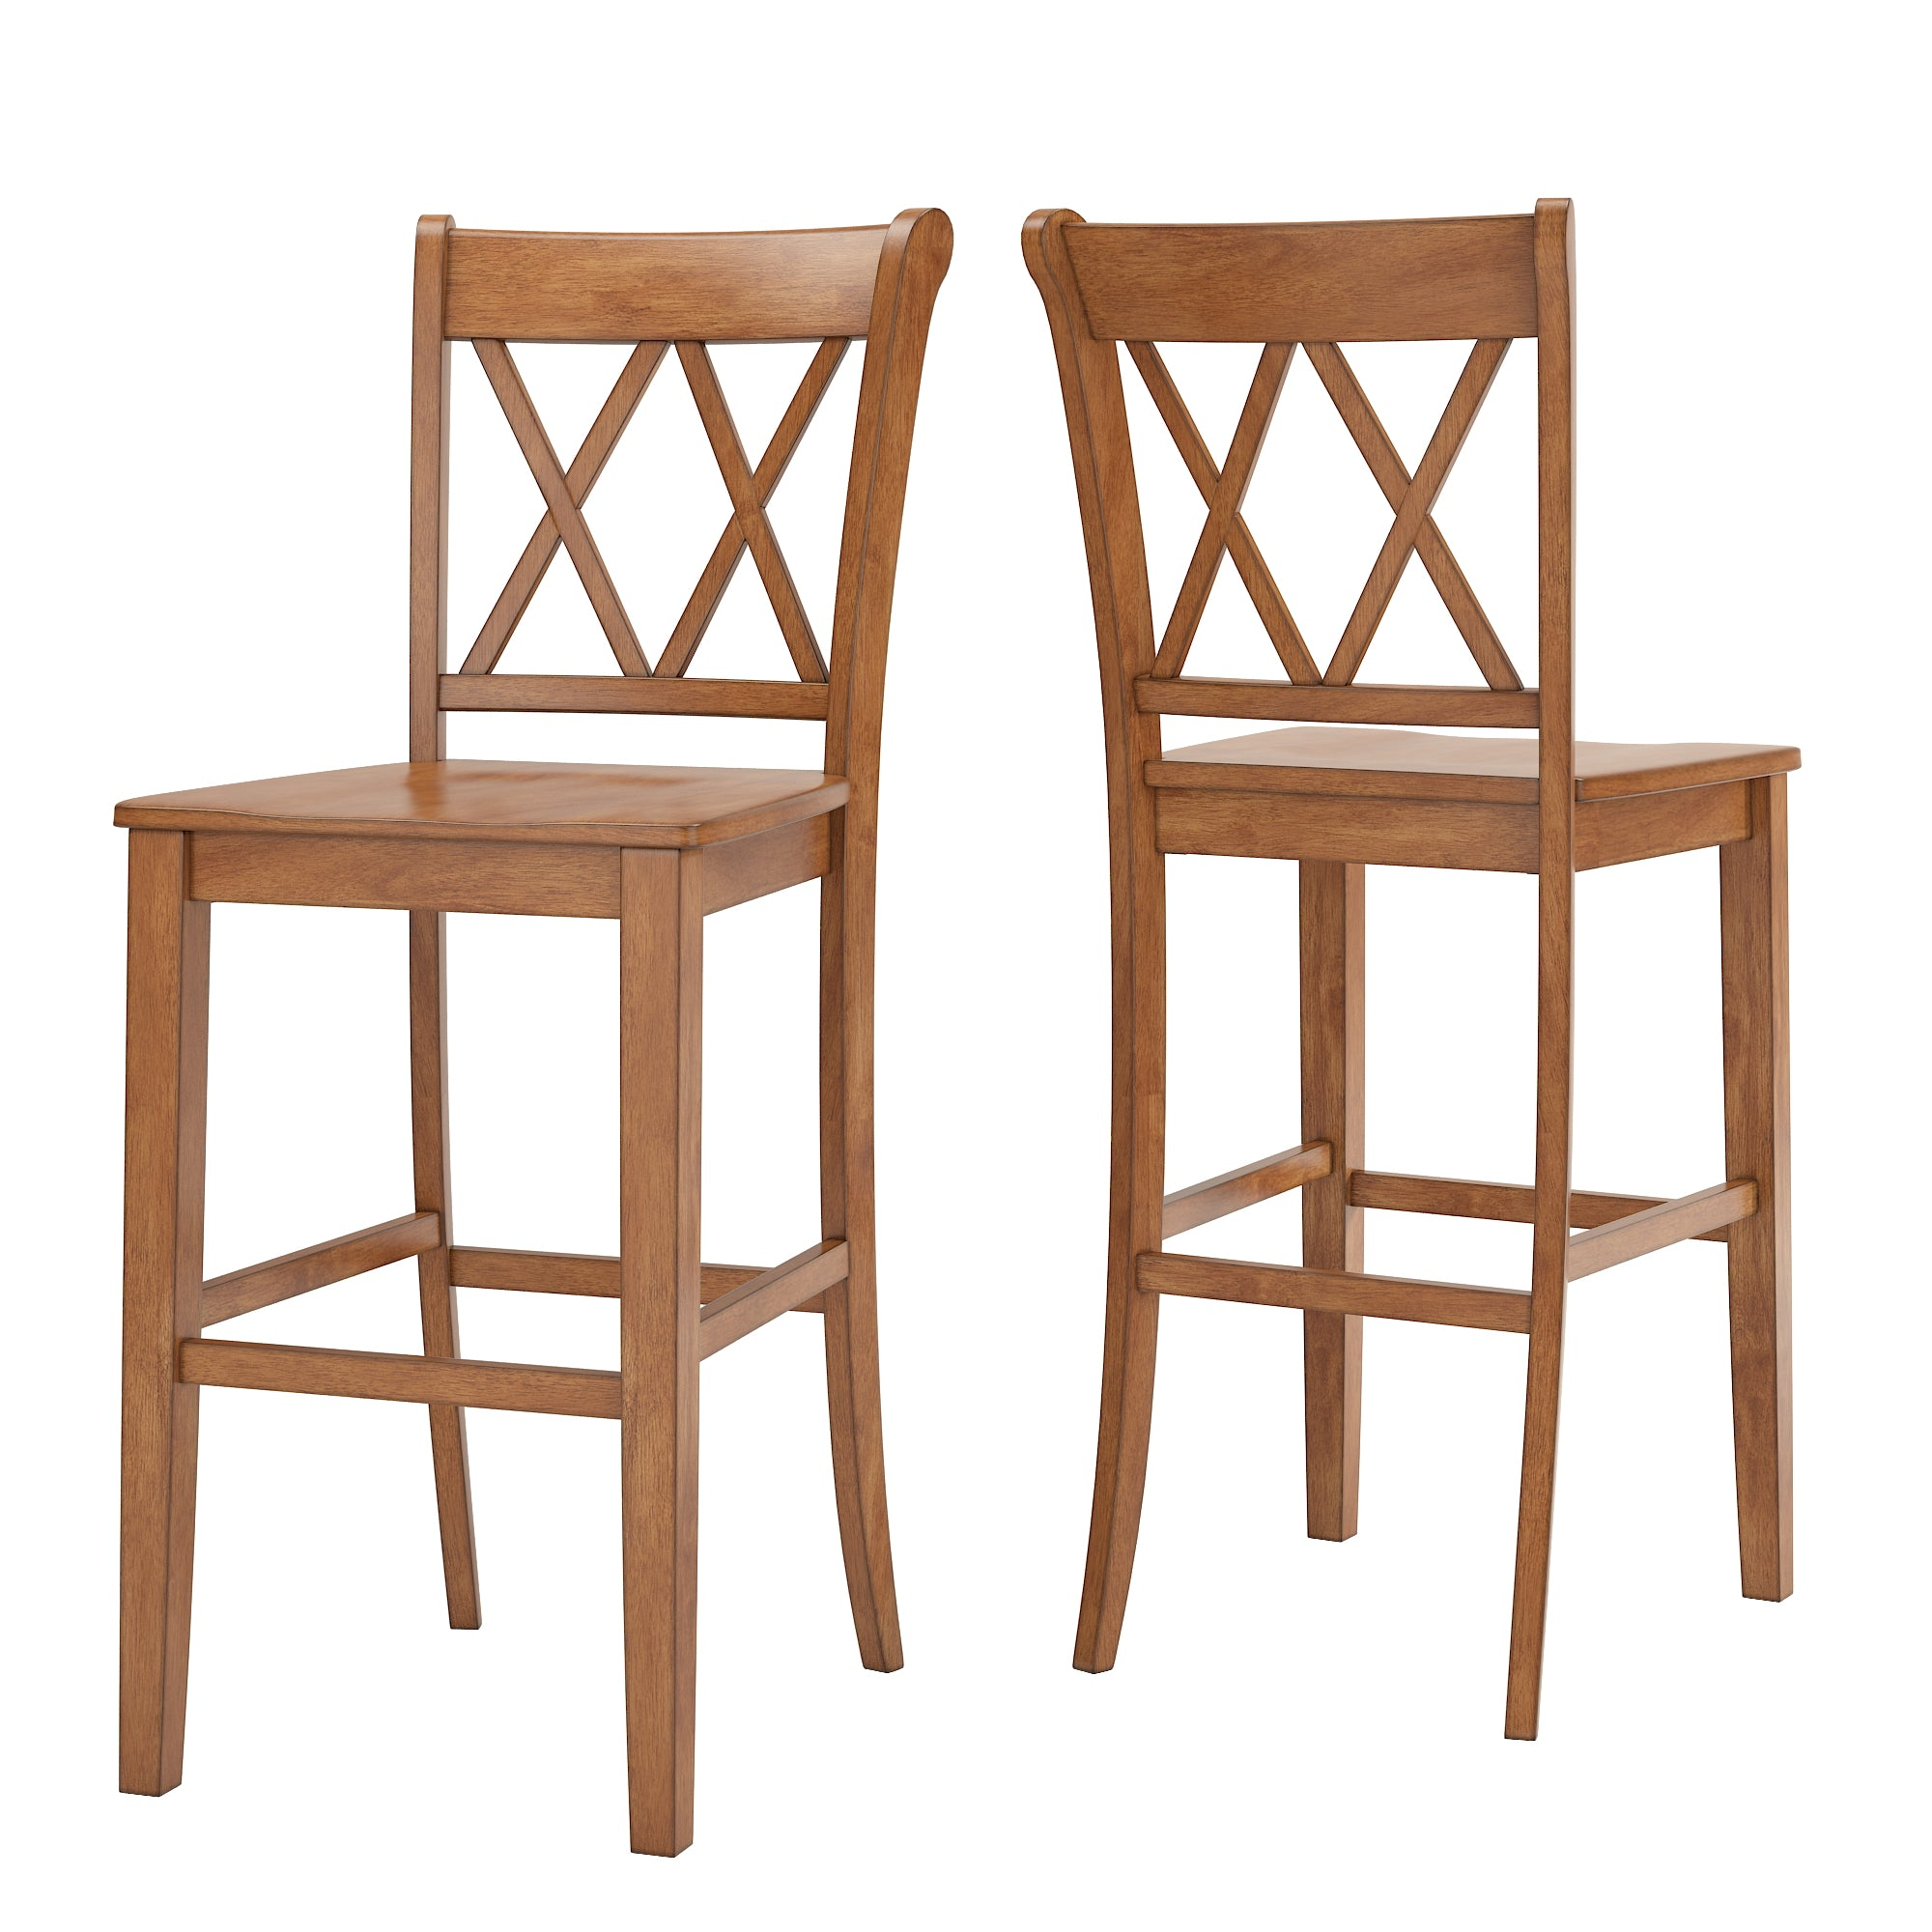 X Back Bar Height Chairs (Set of 2) - Oak Finish